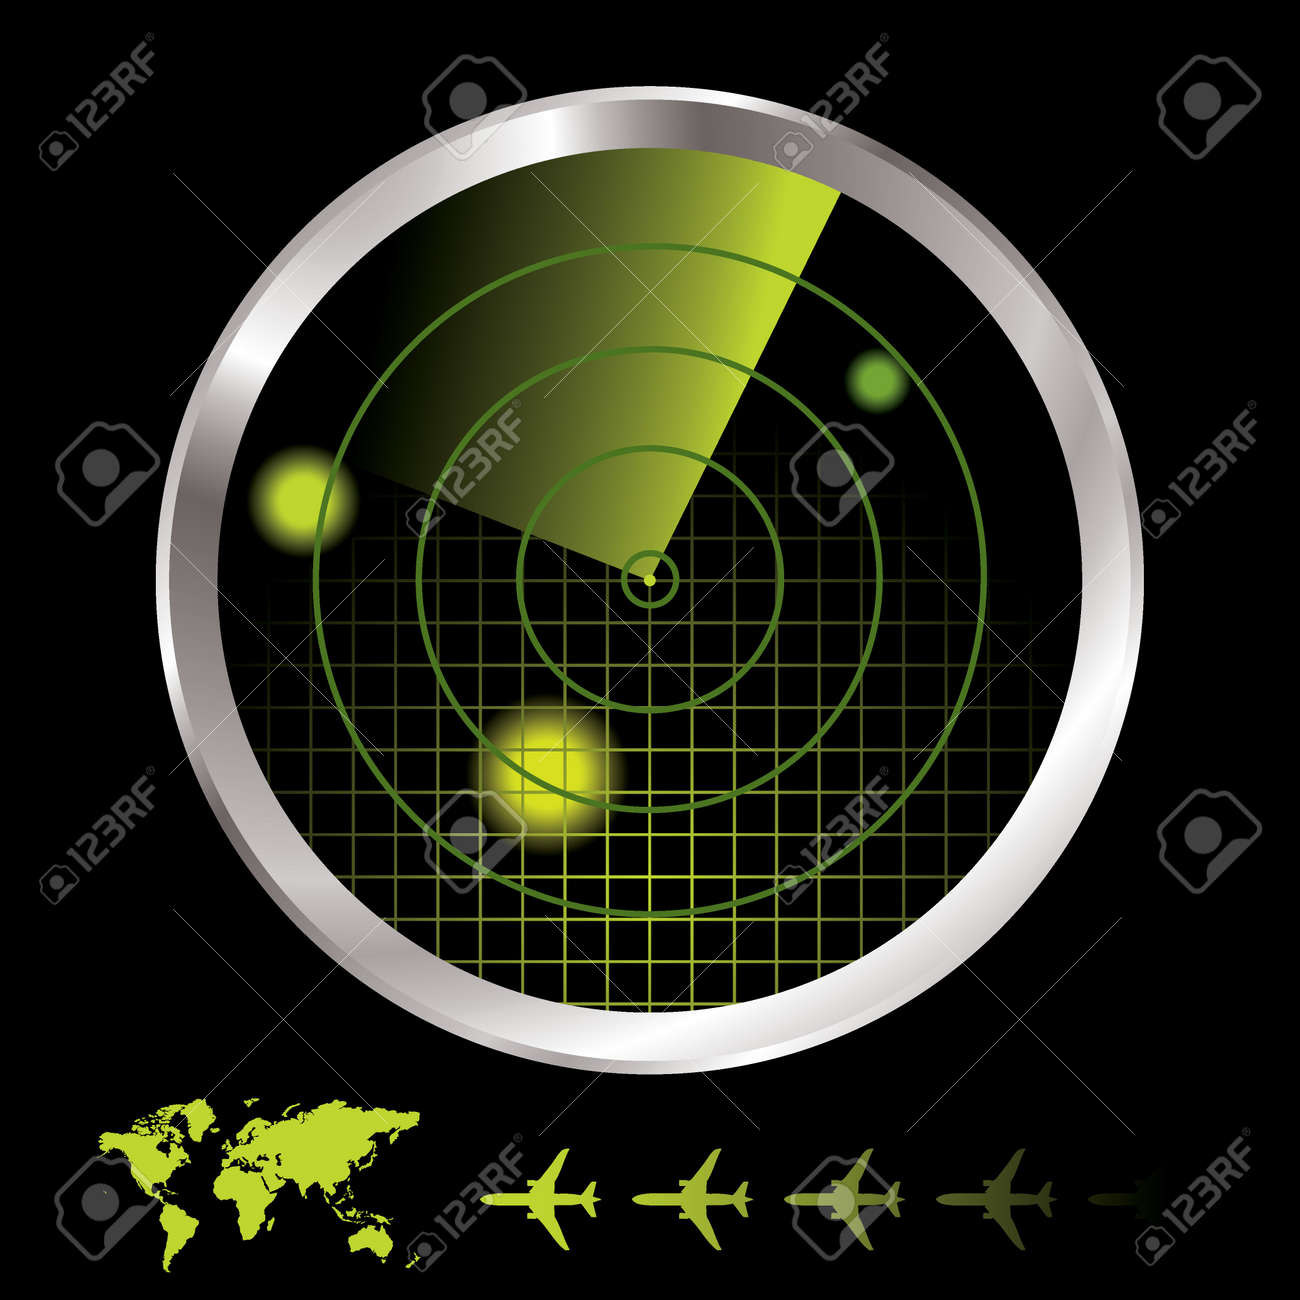 Aircraft radar for airport with world map and plane icon - 11995969